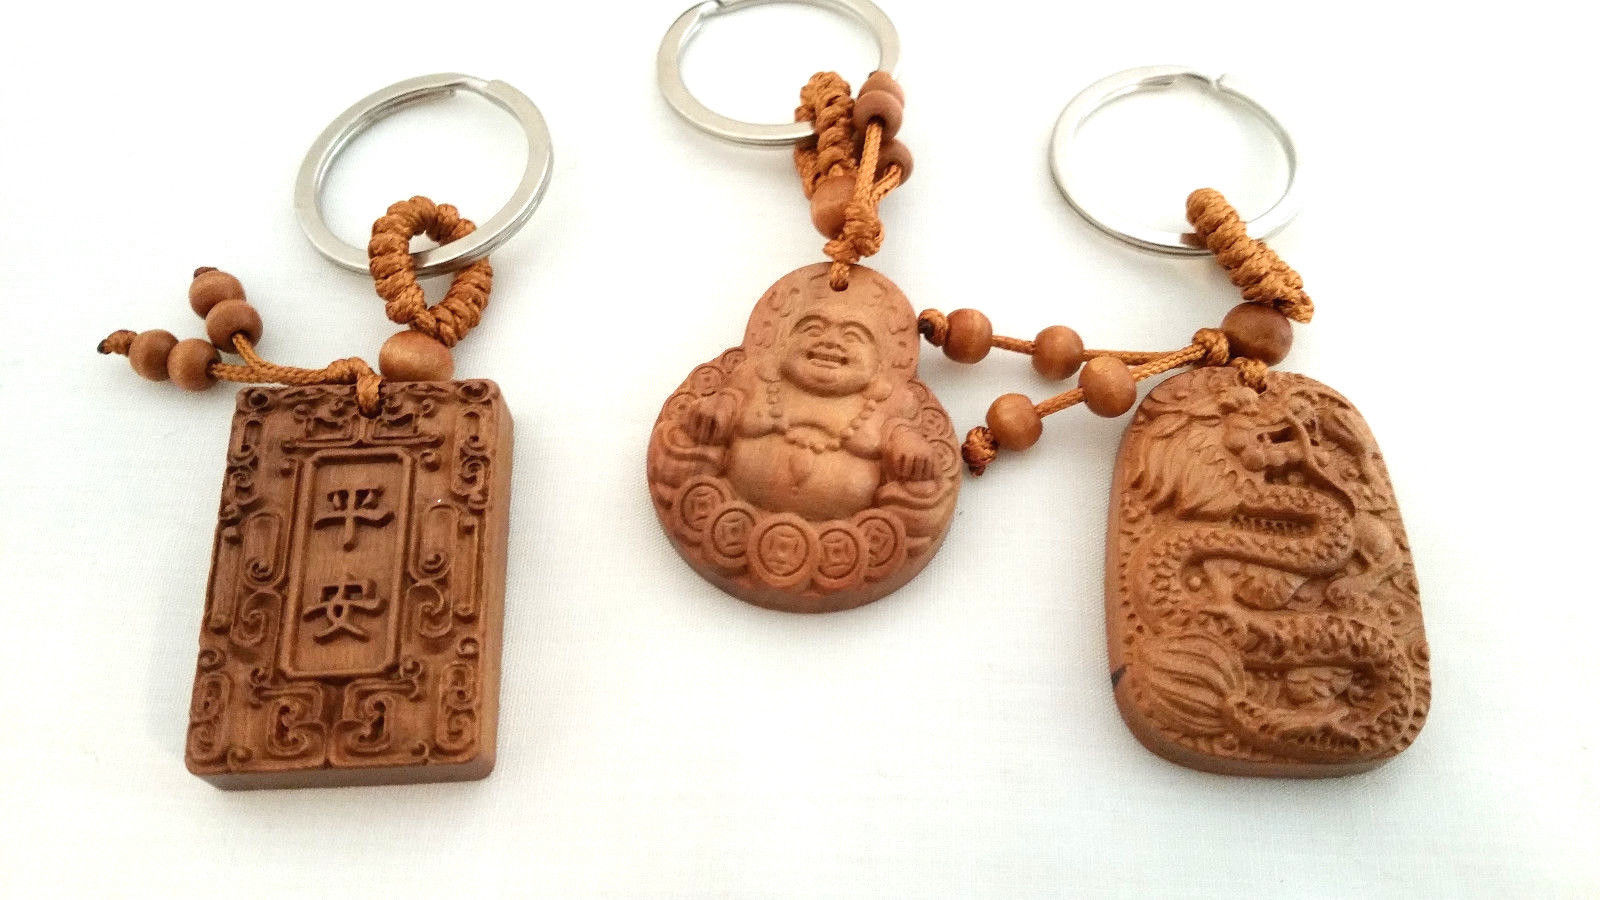 Set of 3 NEW  Bamboo Good Luck Key chains Buddha, Dragon, and Holy Book